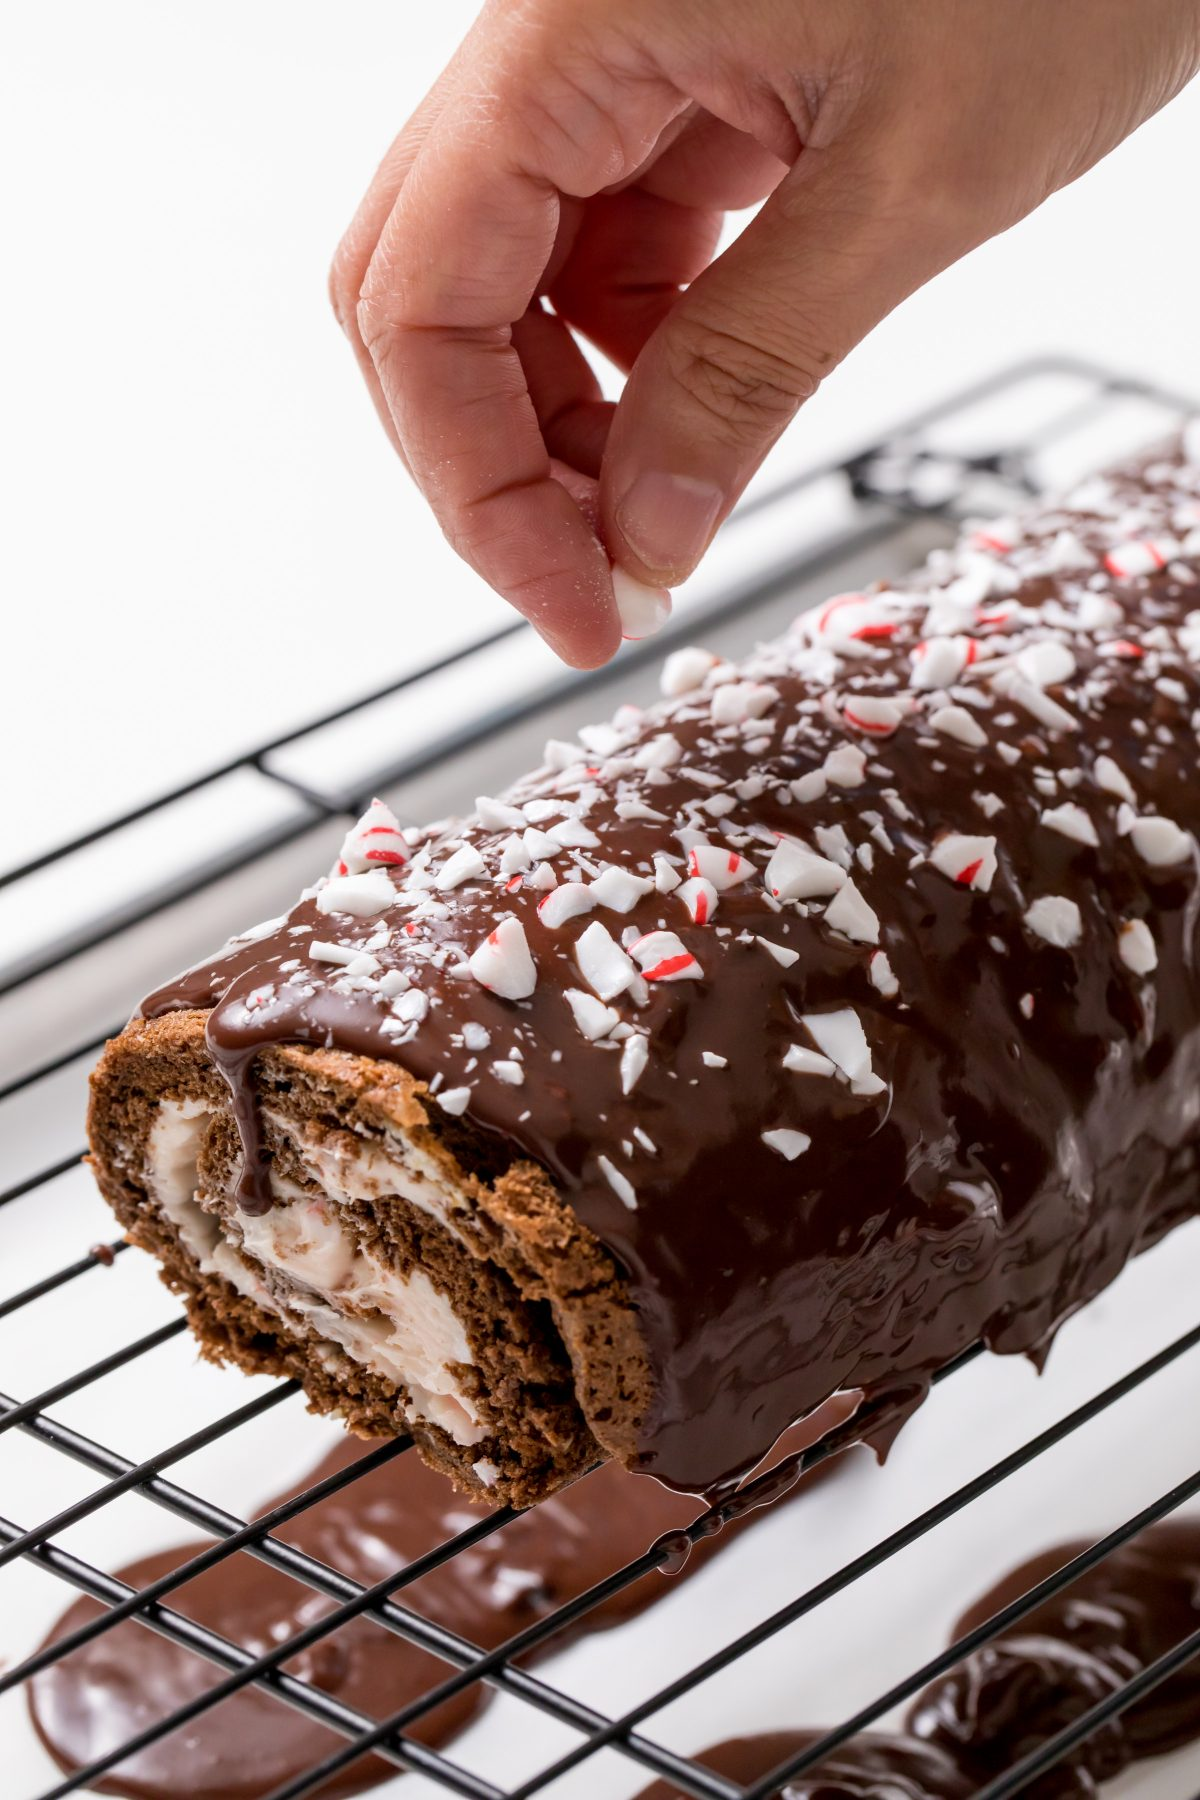 5D4B5958 - Chocolate Peppermint Cake Roll - Garnish the cake with crushed peppermint candies